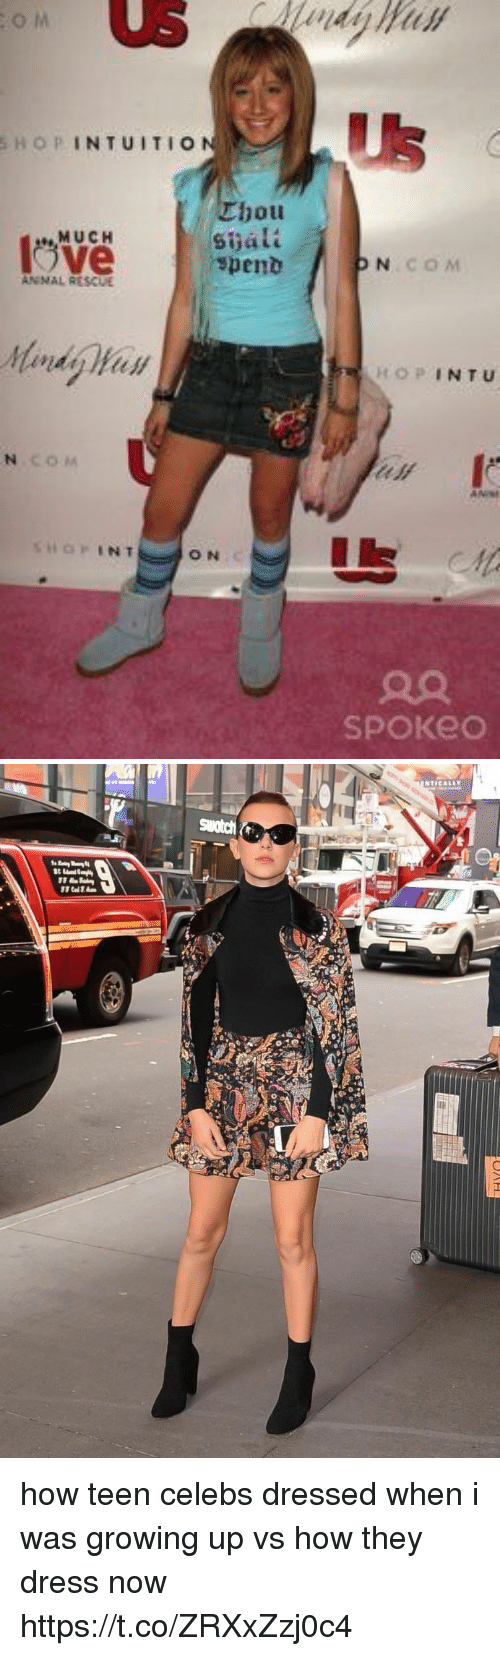 Growing Up, Dress, and Girl Memes: o M  Us  SHOPINTUITIO  Ubou  Sijalt  spent  MUCH  COM  Mandy Han  OPINTU  c o M  ON  90  SPOKeo how teen celebs dressed when i was growing up vs how they dress now https://t.co/ZRXxZzj0c4